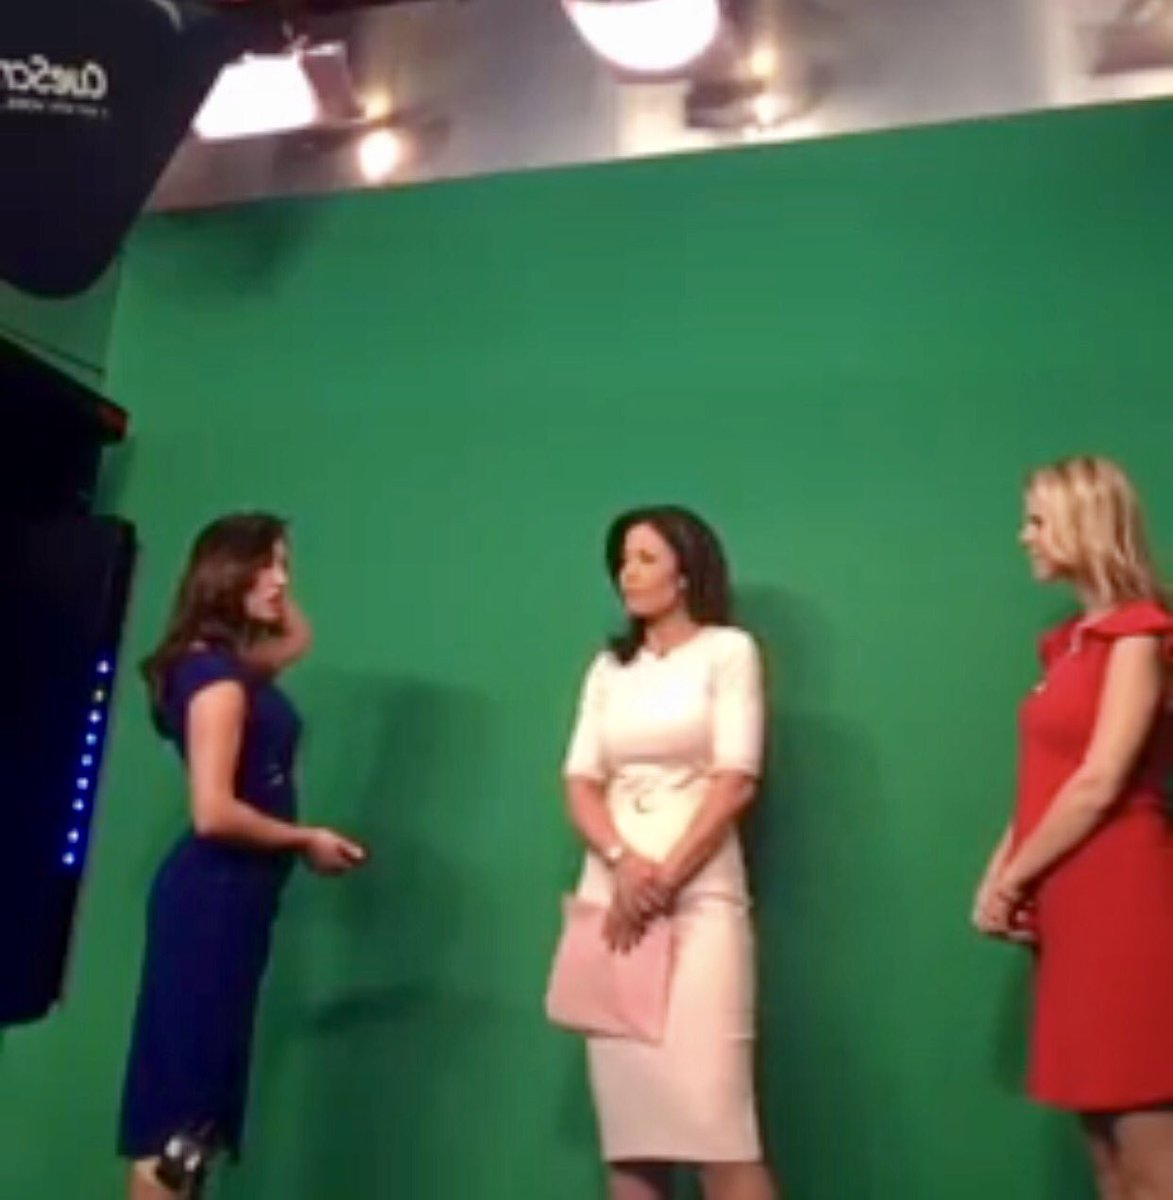 Wednesday morning headlines, your weather, #Wizards &amp; something new you&#39;ll notice on #Facebook today WATCH:  https://www. facebook.com/ohmygoff/video s/10158341421610328/ &nbsp; …  #nbc4dc <br>http://pic.twitter.com/mdTvhQB2CD